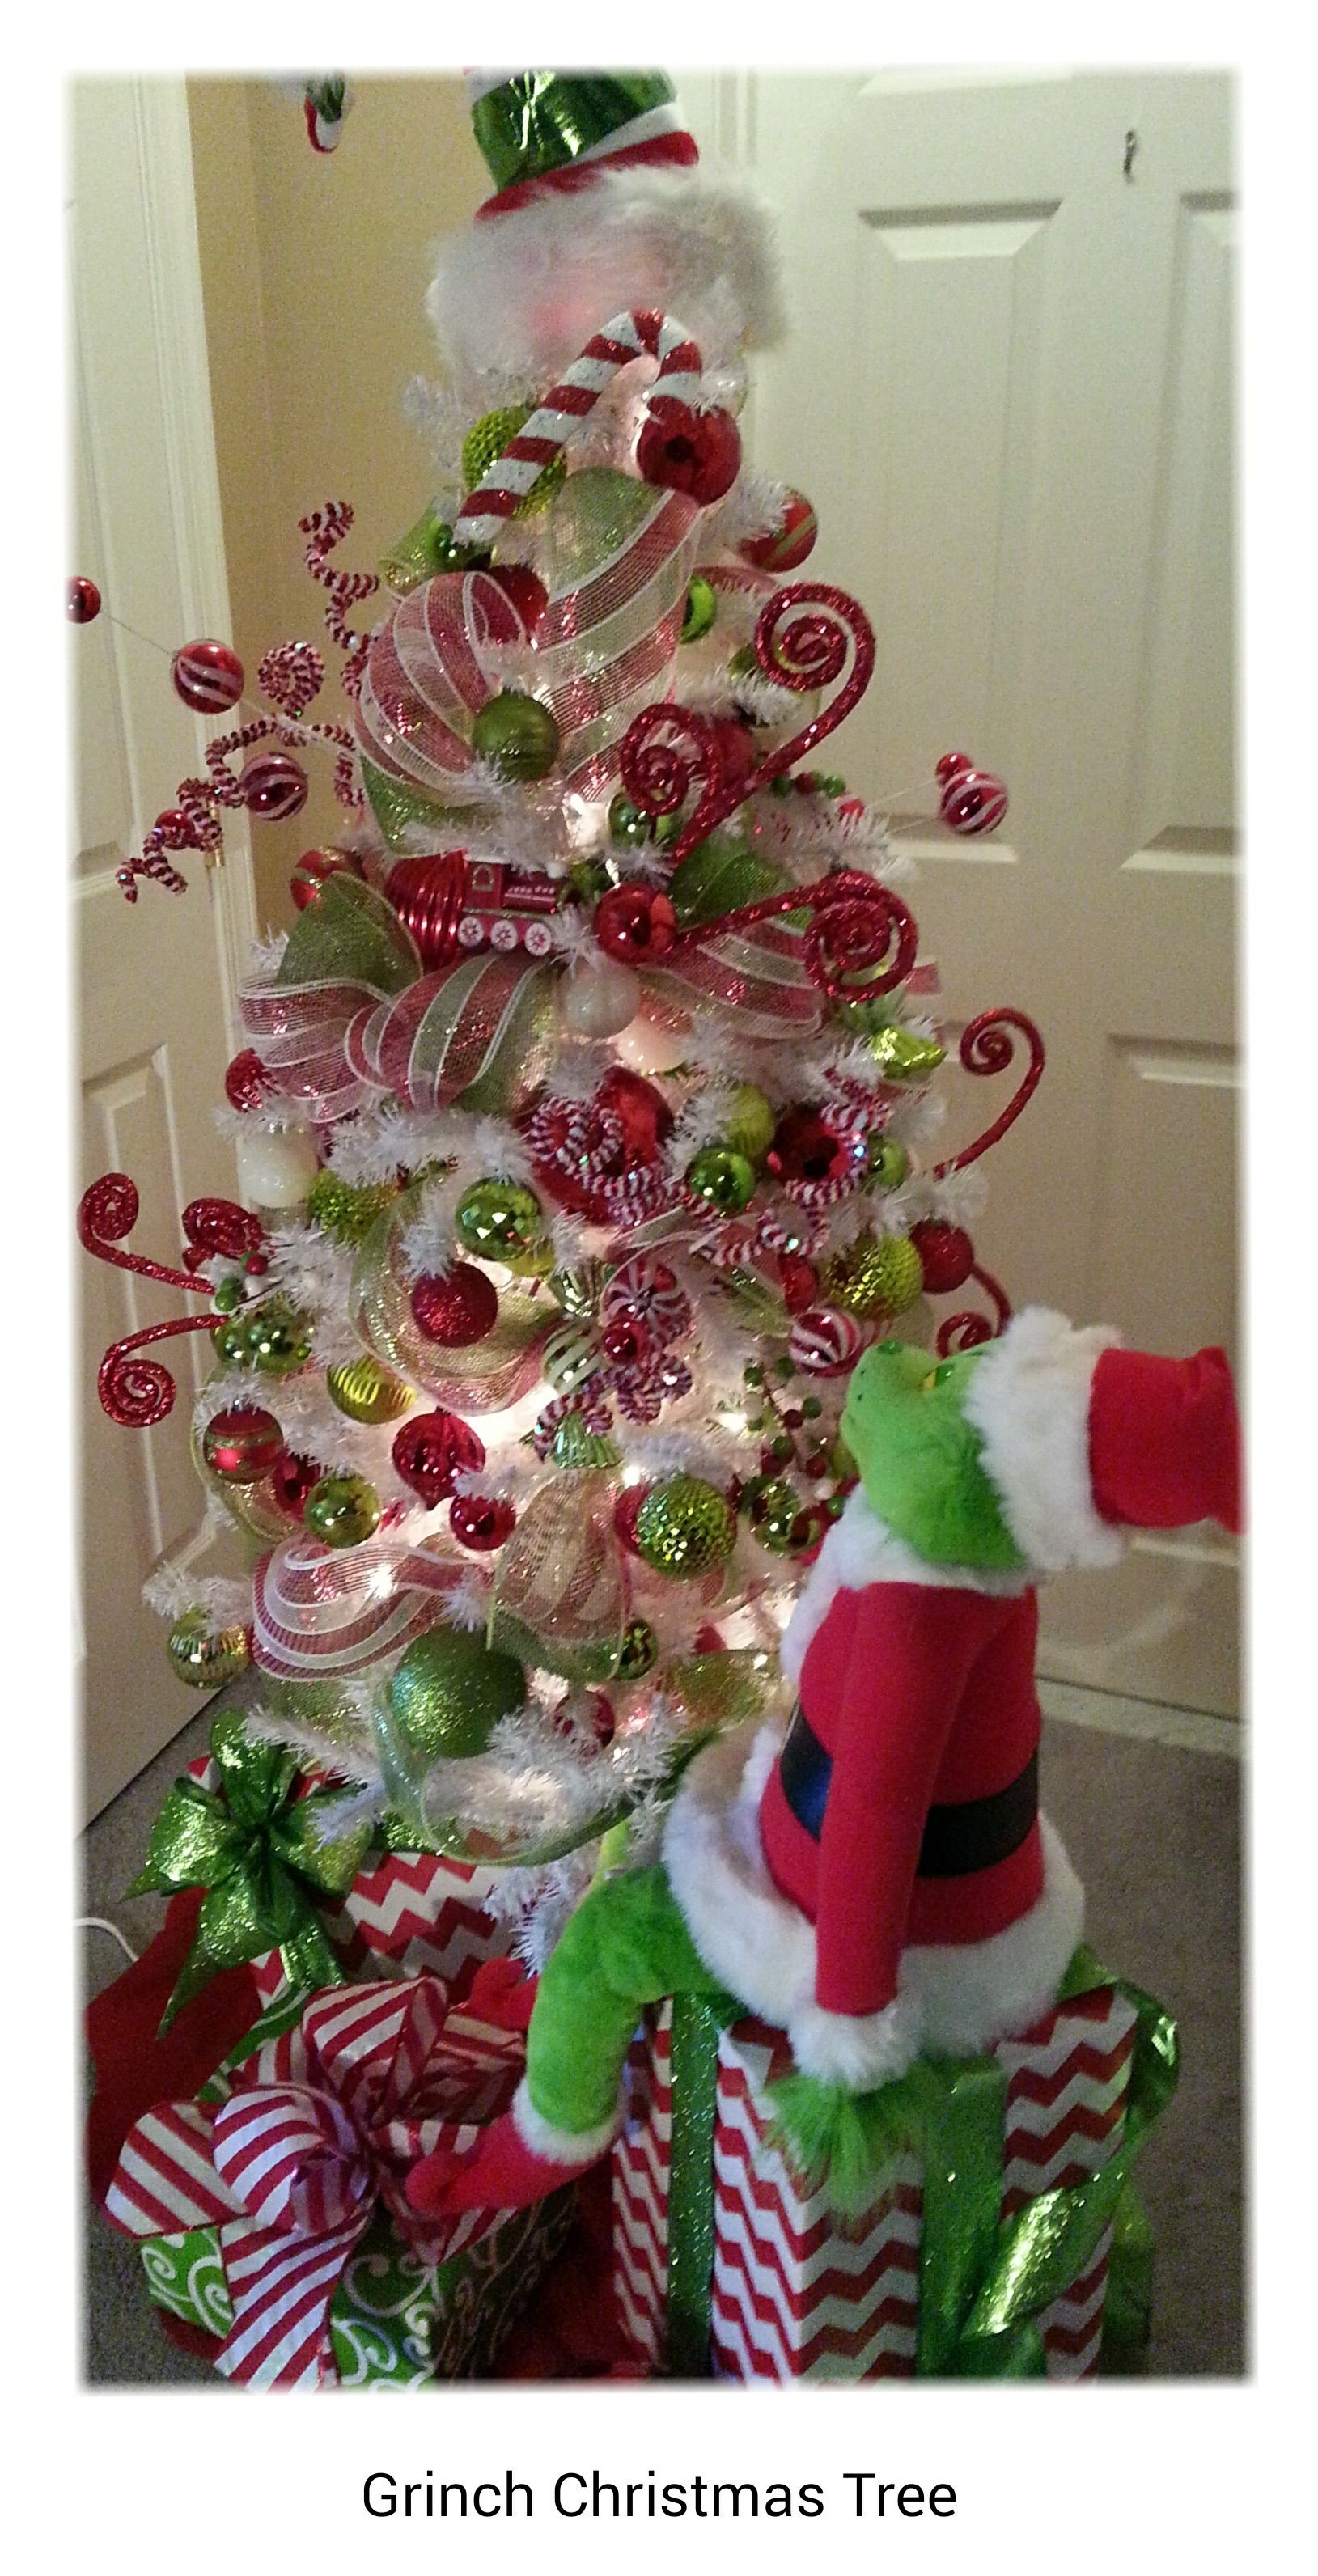 Grinch Has His Eye On Christmas